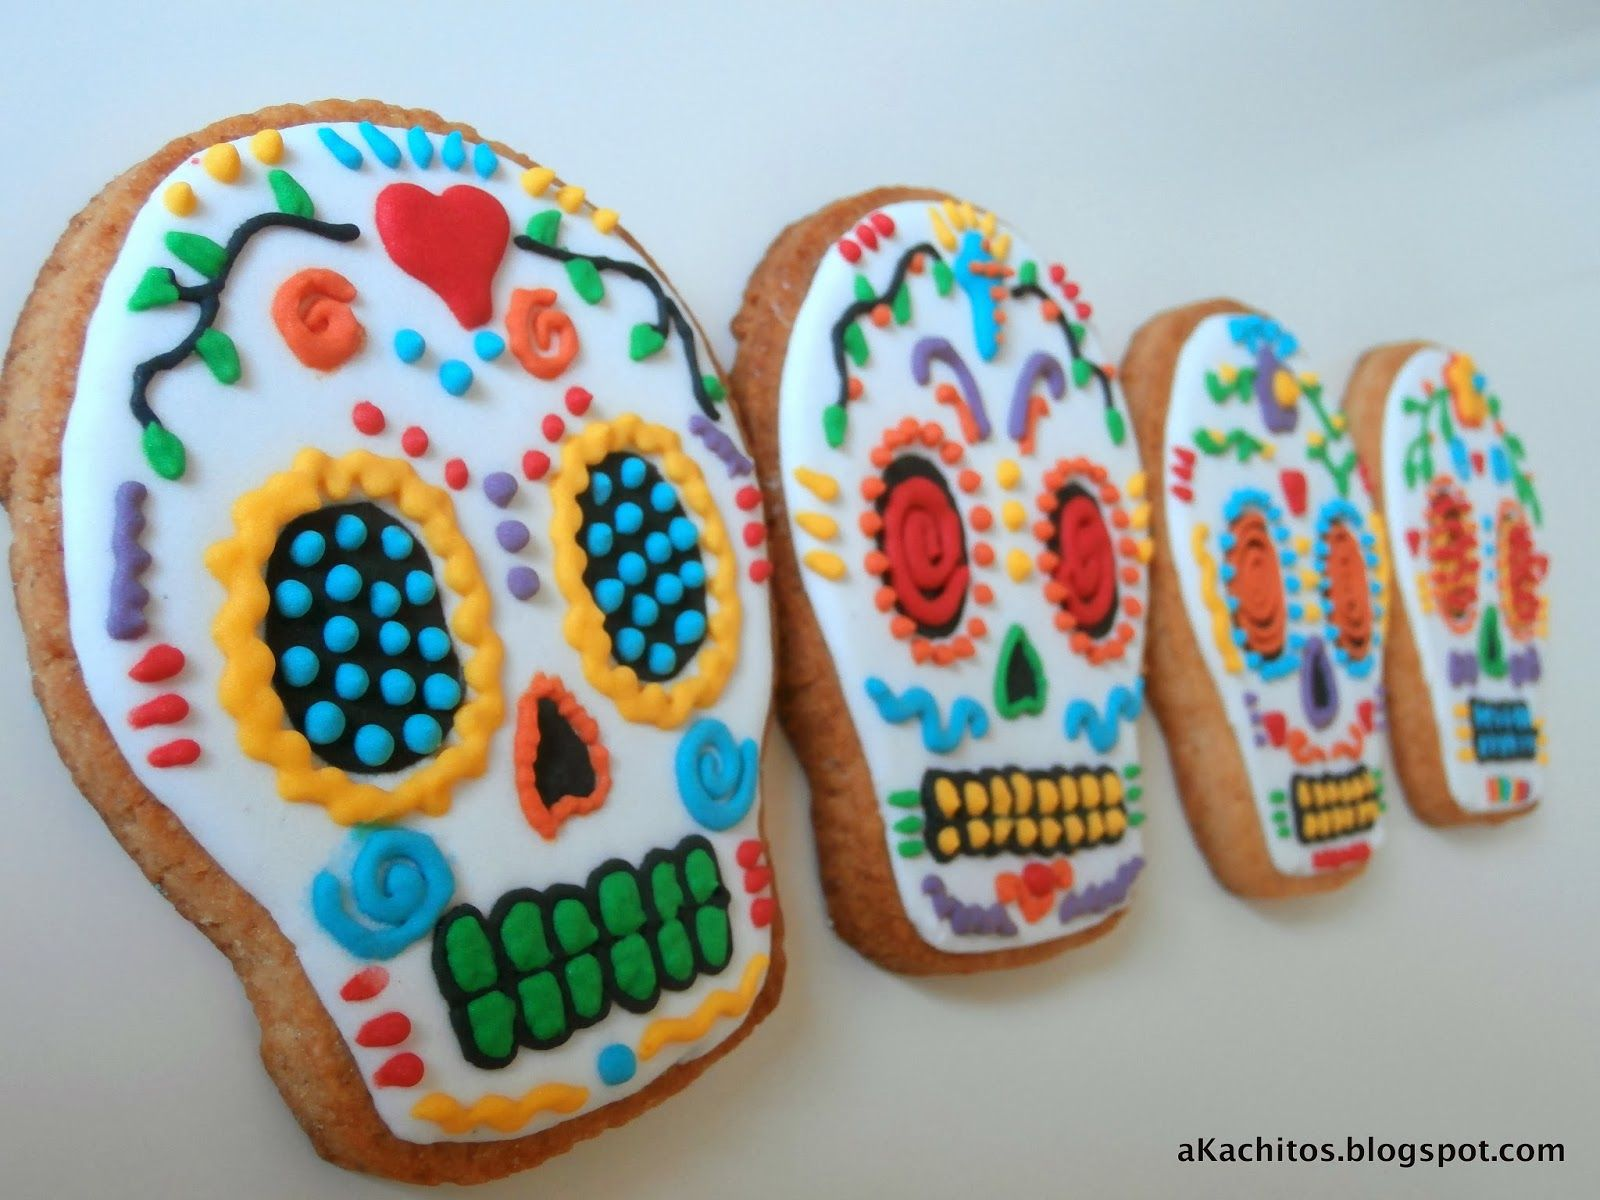 Galletas Decoradas Hallowen Galletas Decoradas De Frida Kahlo Buscar Con Google